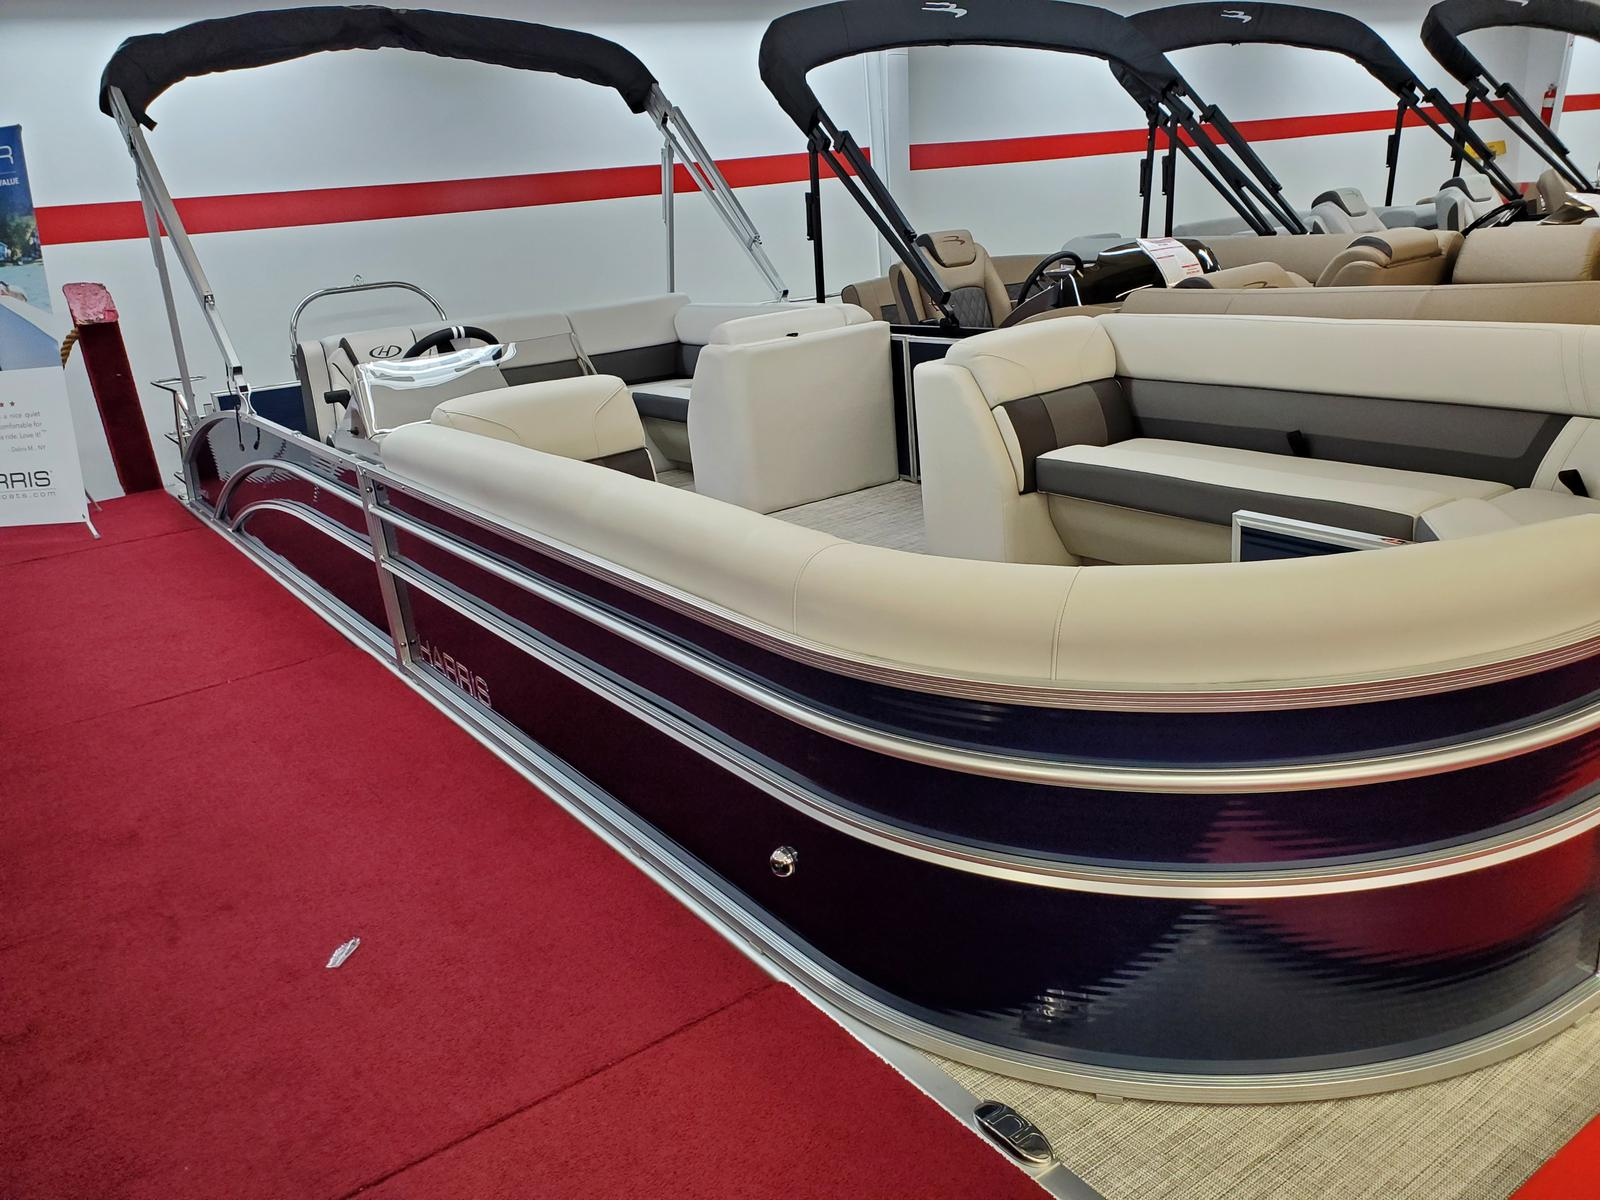 2021 Harris boat for sale, model of the boat is Cruiser 250 & Image # 1 of 15